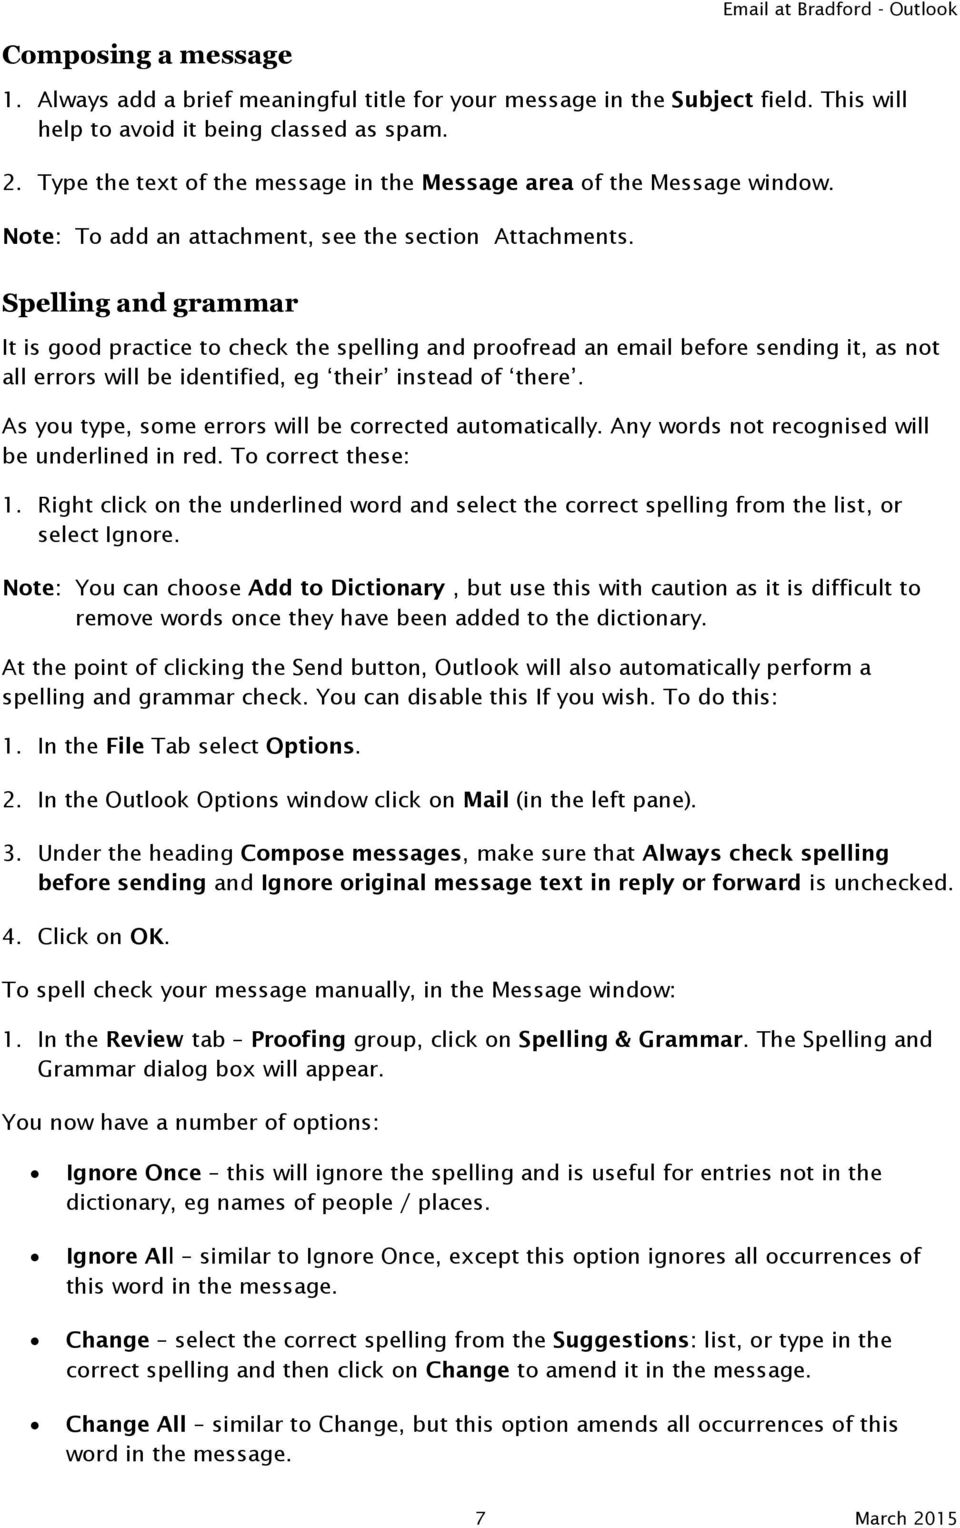 Spelling and grammar It is good practice to check the spelling and proofread an email before sending it, as not all errors will be identified, eg their instead of there.